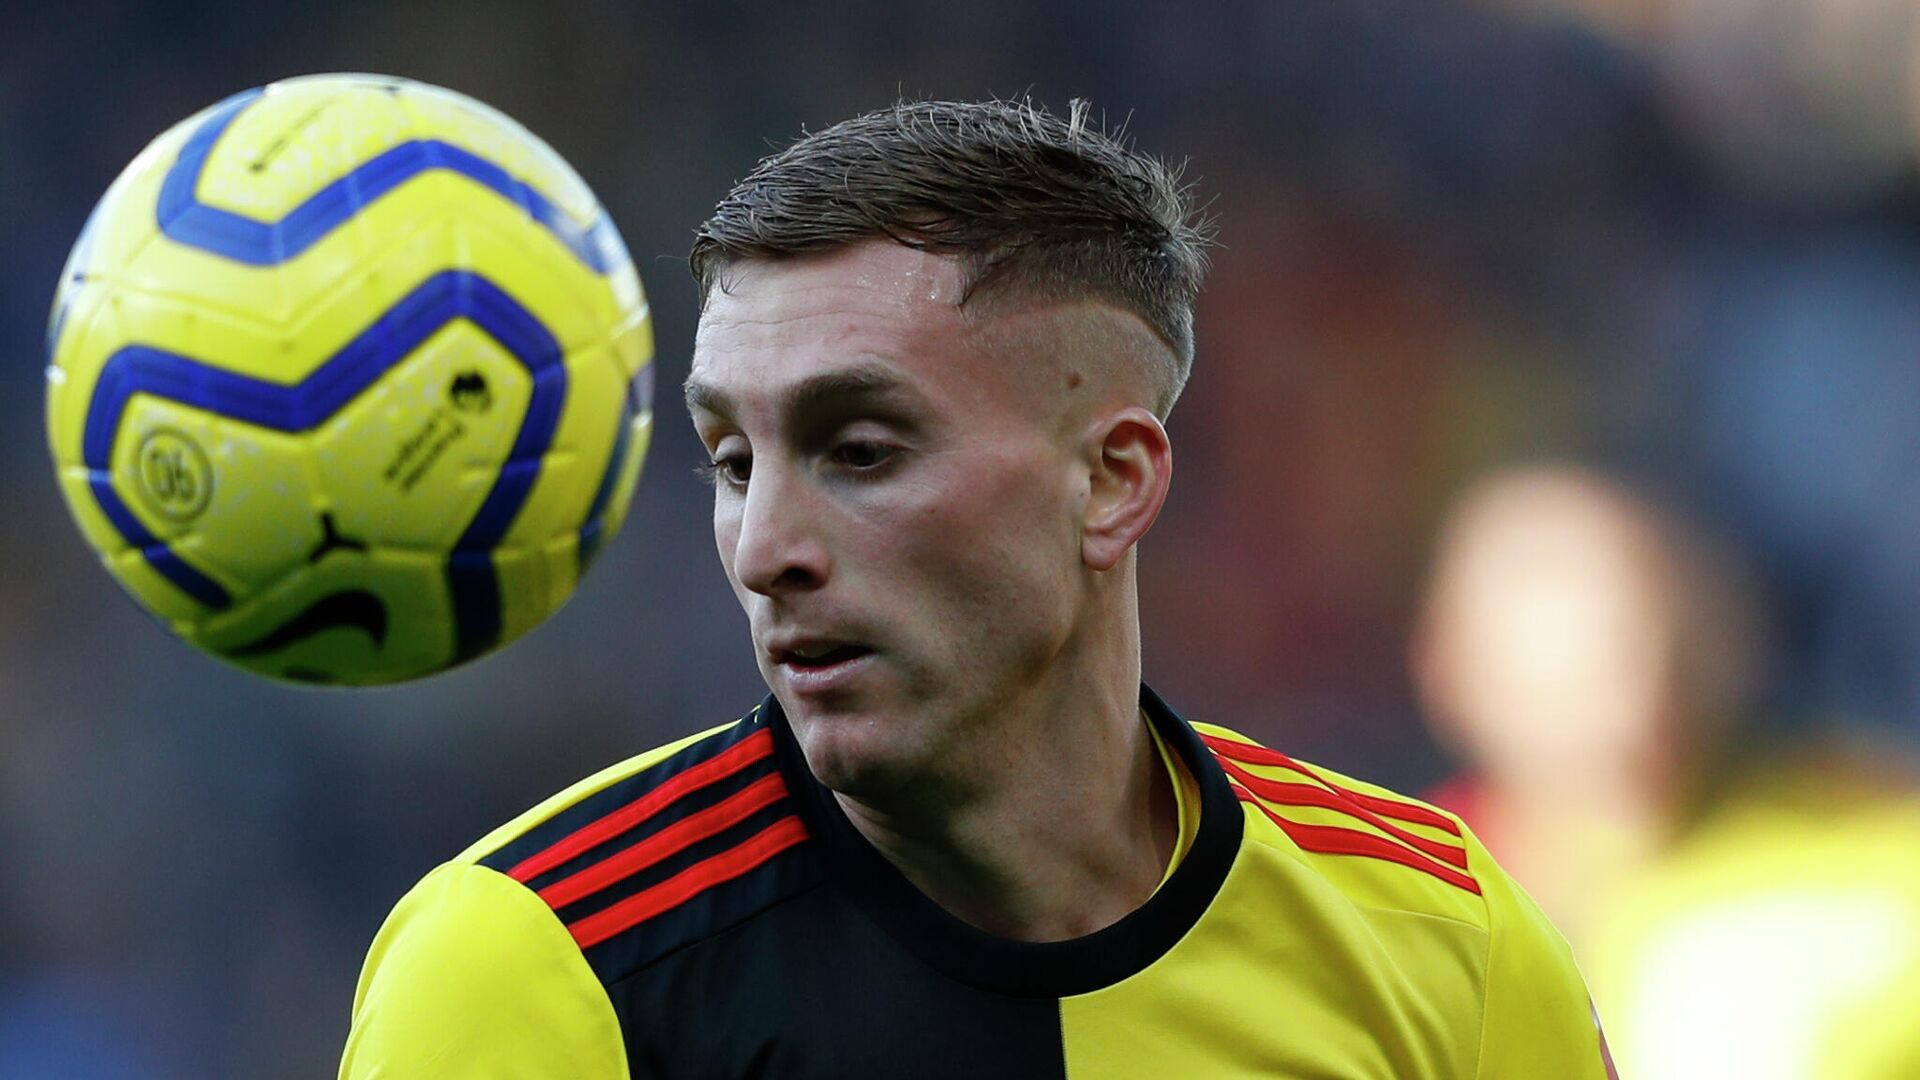 Watford's Spanish midfielder Gerard Deulofeu controls the ball during the English Premier League football match between Watford and Tottenham Hotspur at Vicarage Road Stadium in Watford, north of London on January 18, 2020. (Photo by Adrian DENNIS / AFP) / RESTRICTED TO EDITORIAL USE. No use with unauthorized audio, video, data, fixture lists, club/league logos or 'live' services. Online in-match use limited to 120 images. An additional 40 images may be used in extra time. No video emulation. Social media in-match use limited to 120 images. An additional 40 images may be used in extra time. No use in betting publications, games or single club/league/player publications. /  - РИА Новости, 1920, 30.01.2021